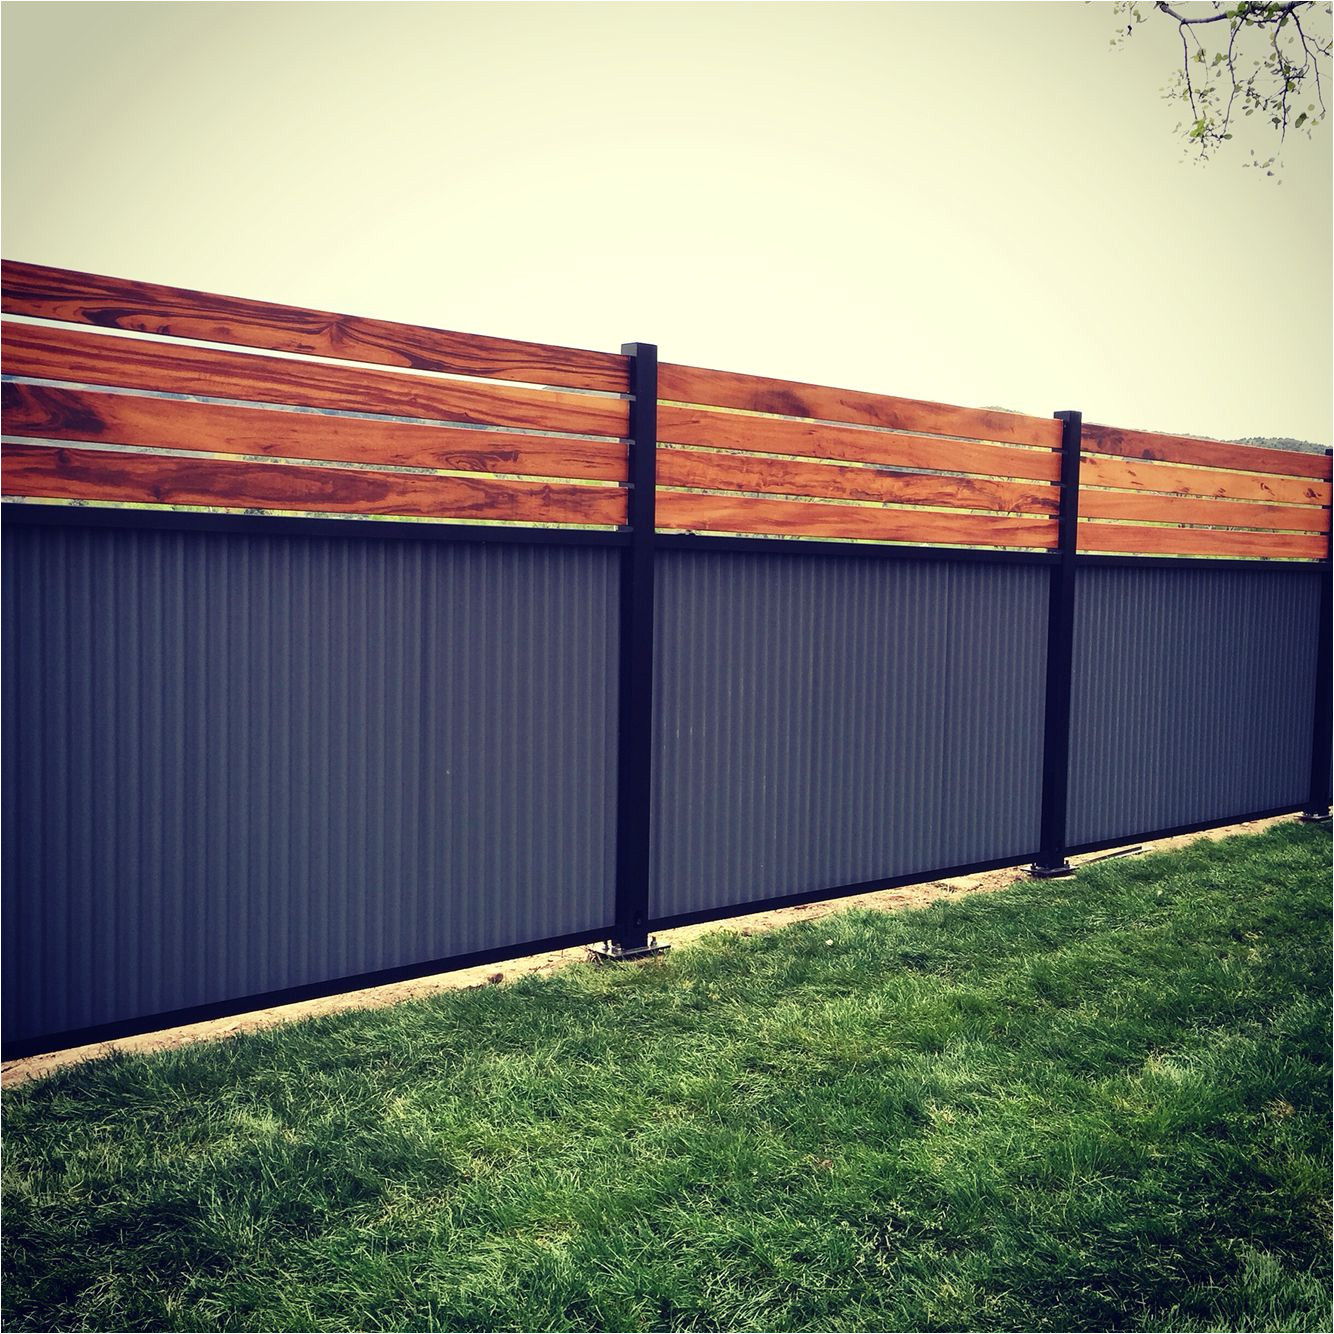 custom privacy fence built out of metal post tiger wood and corrugated metal